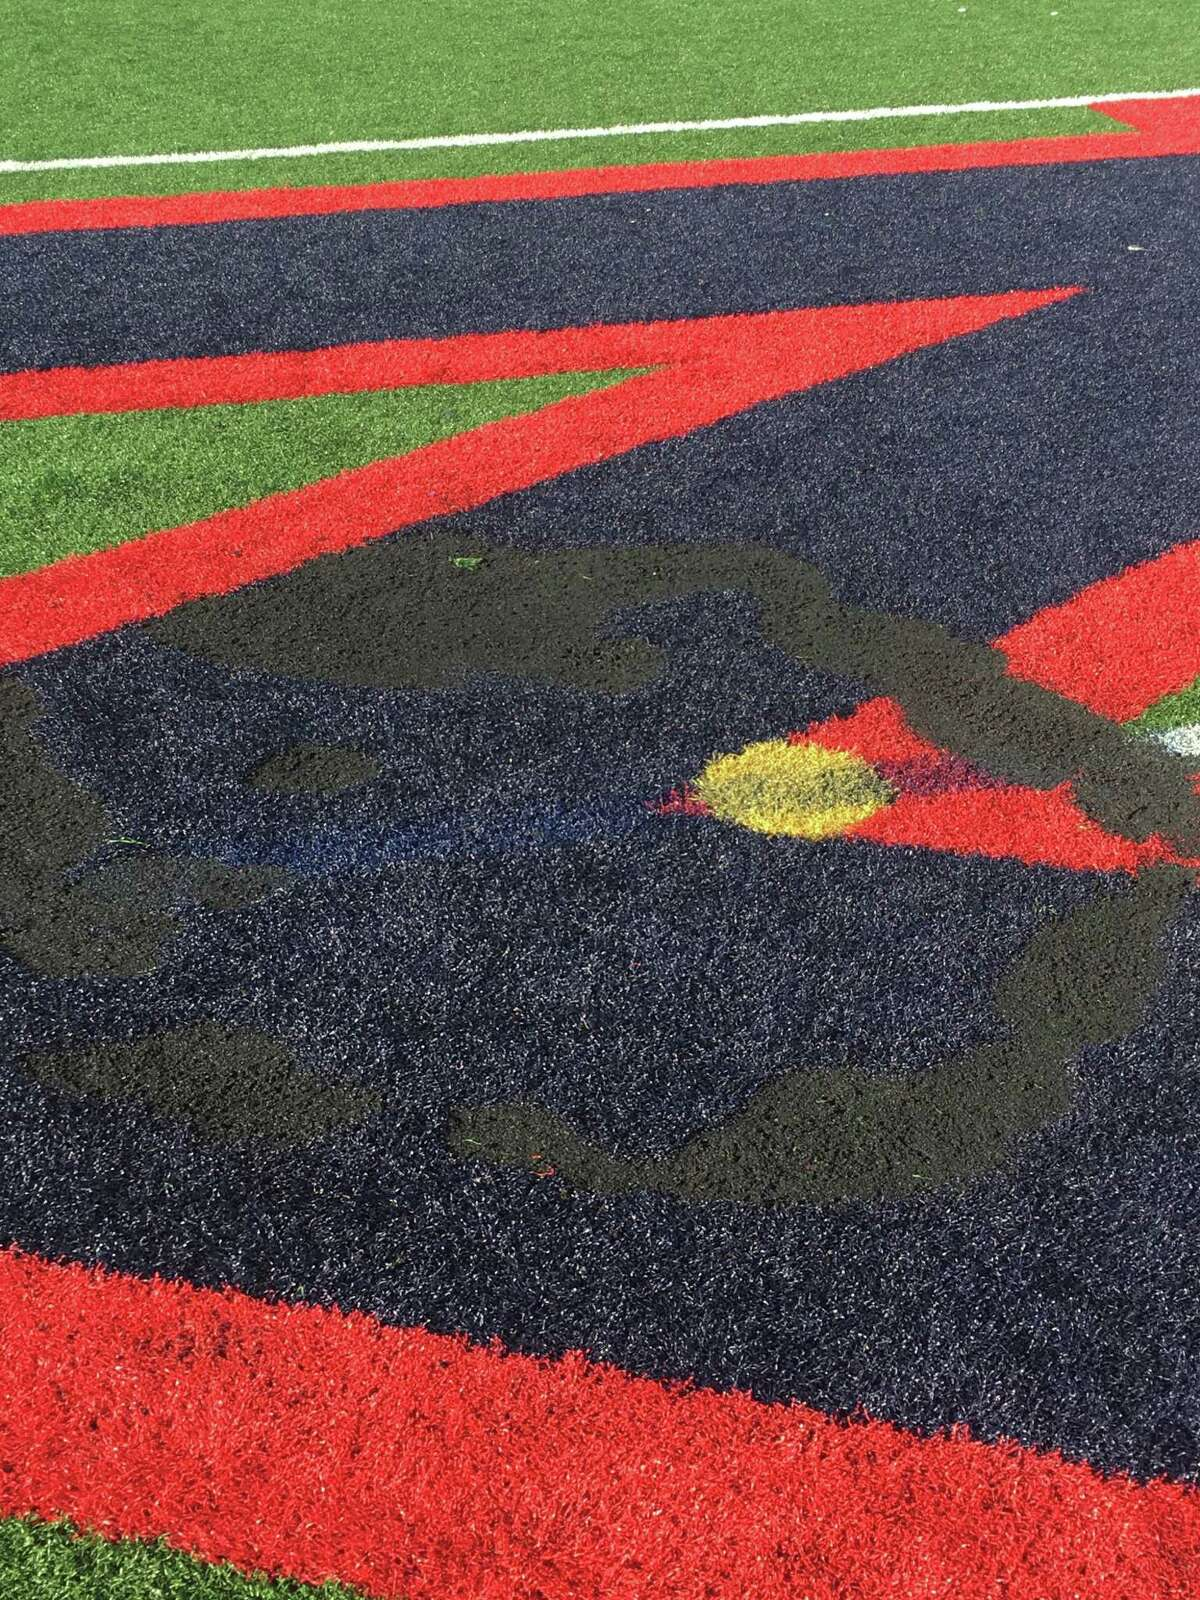 Scorch marks left by an illegal firework set off at Brien McMahon High School.